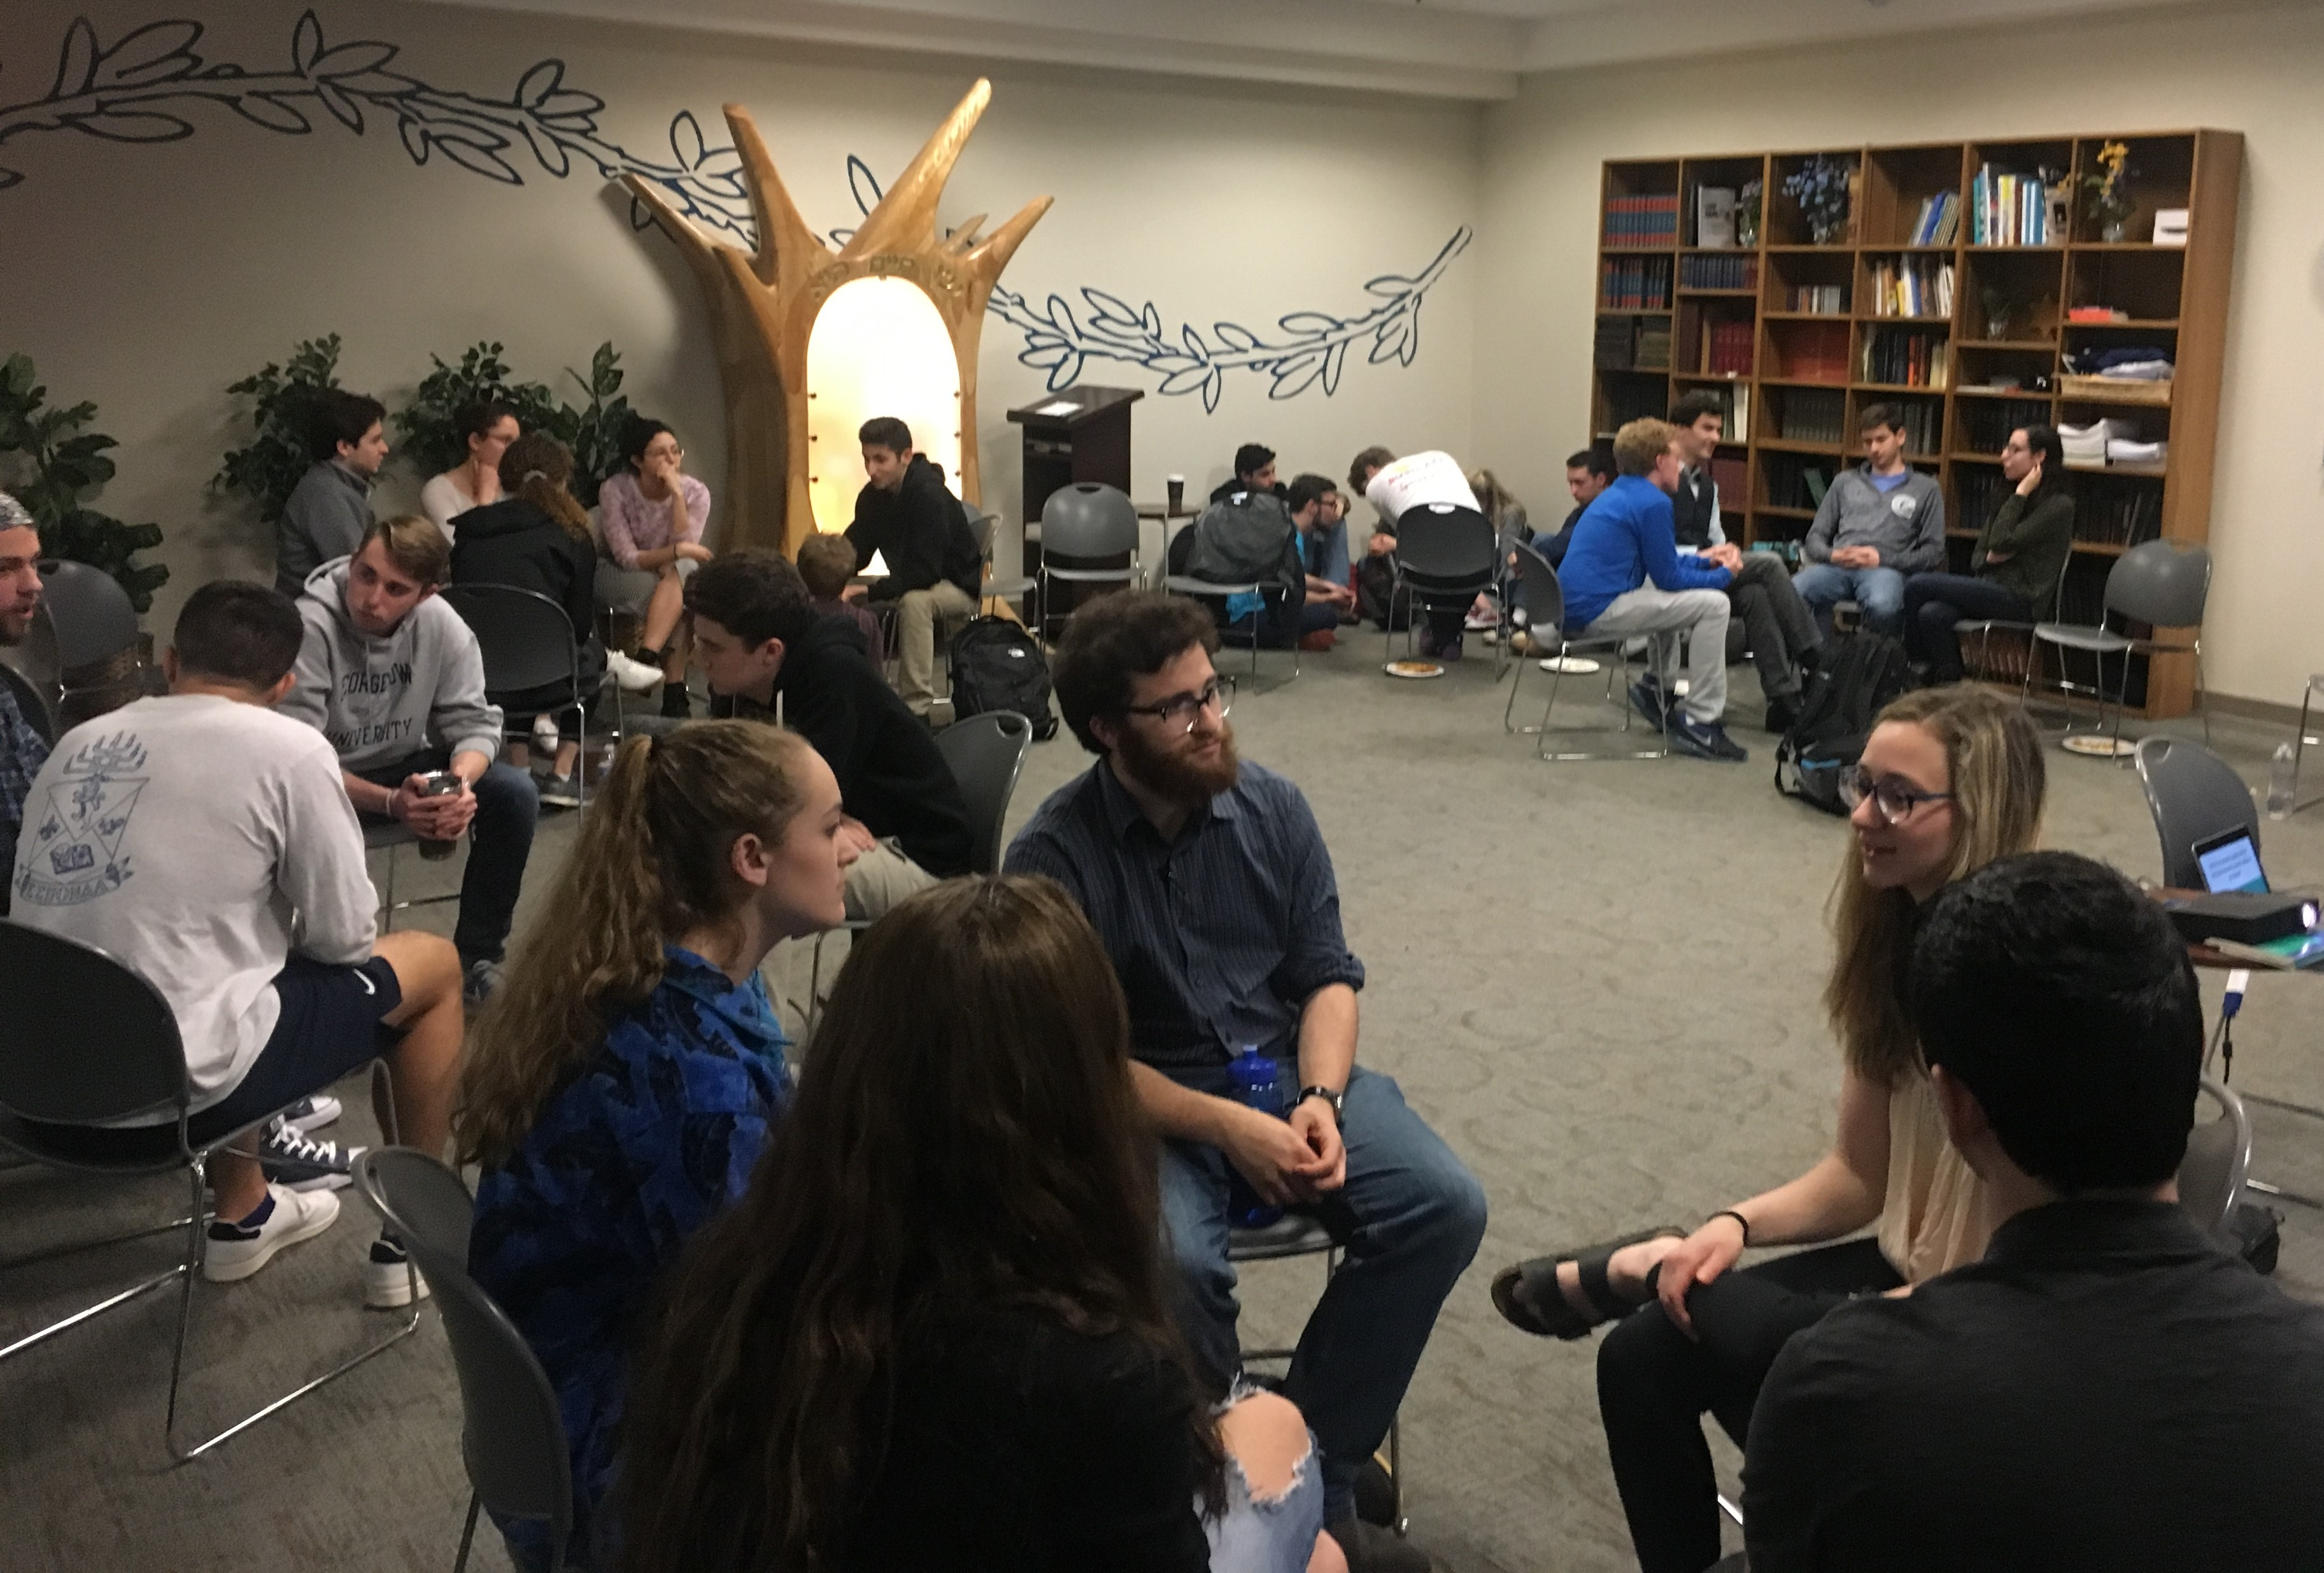 Jewish college students gather to discuss issues of gender-based violence